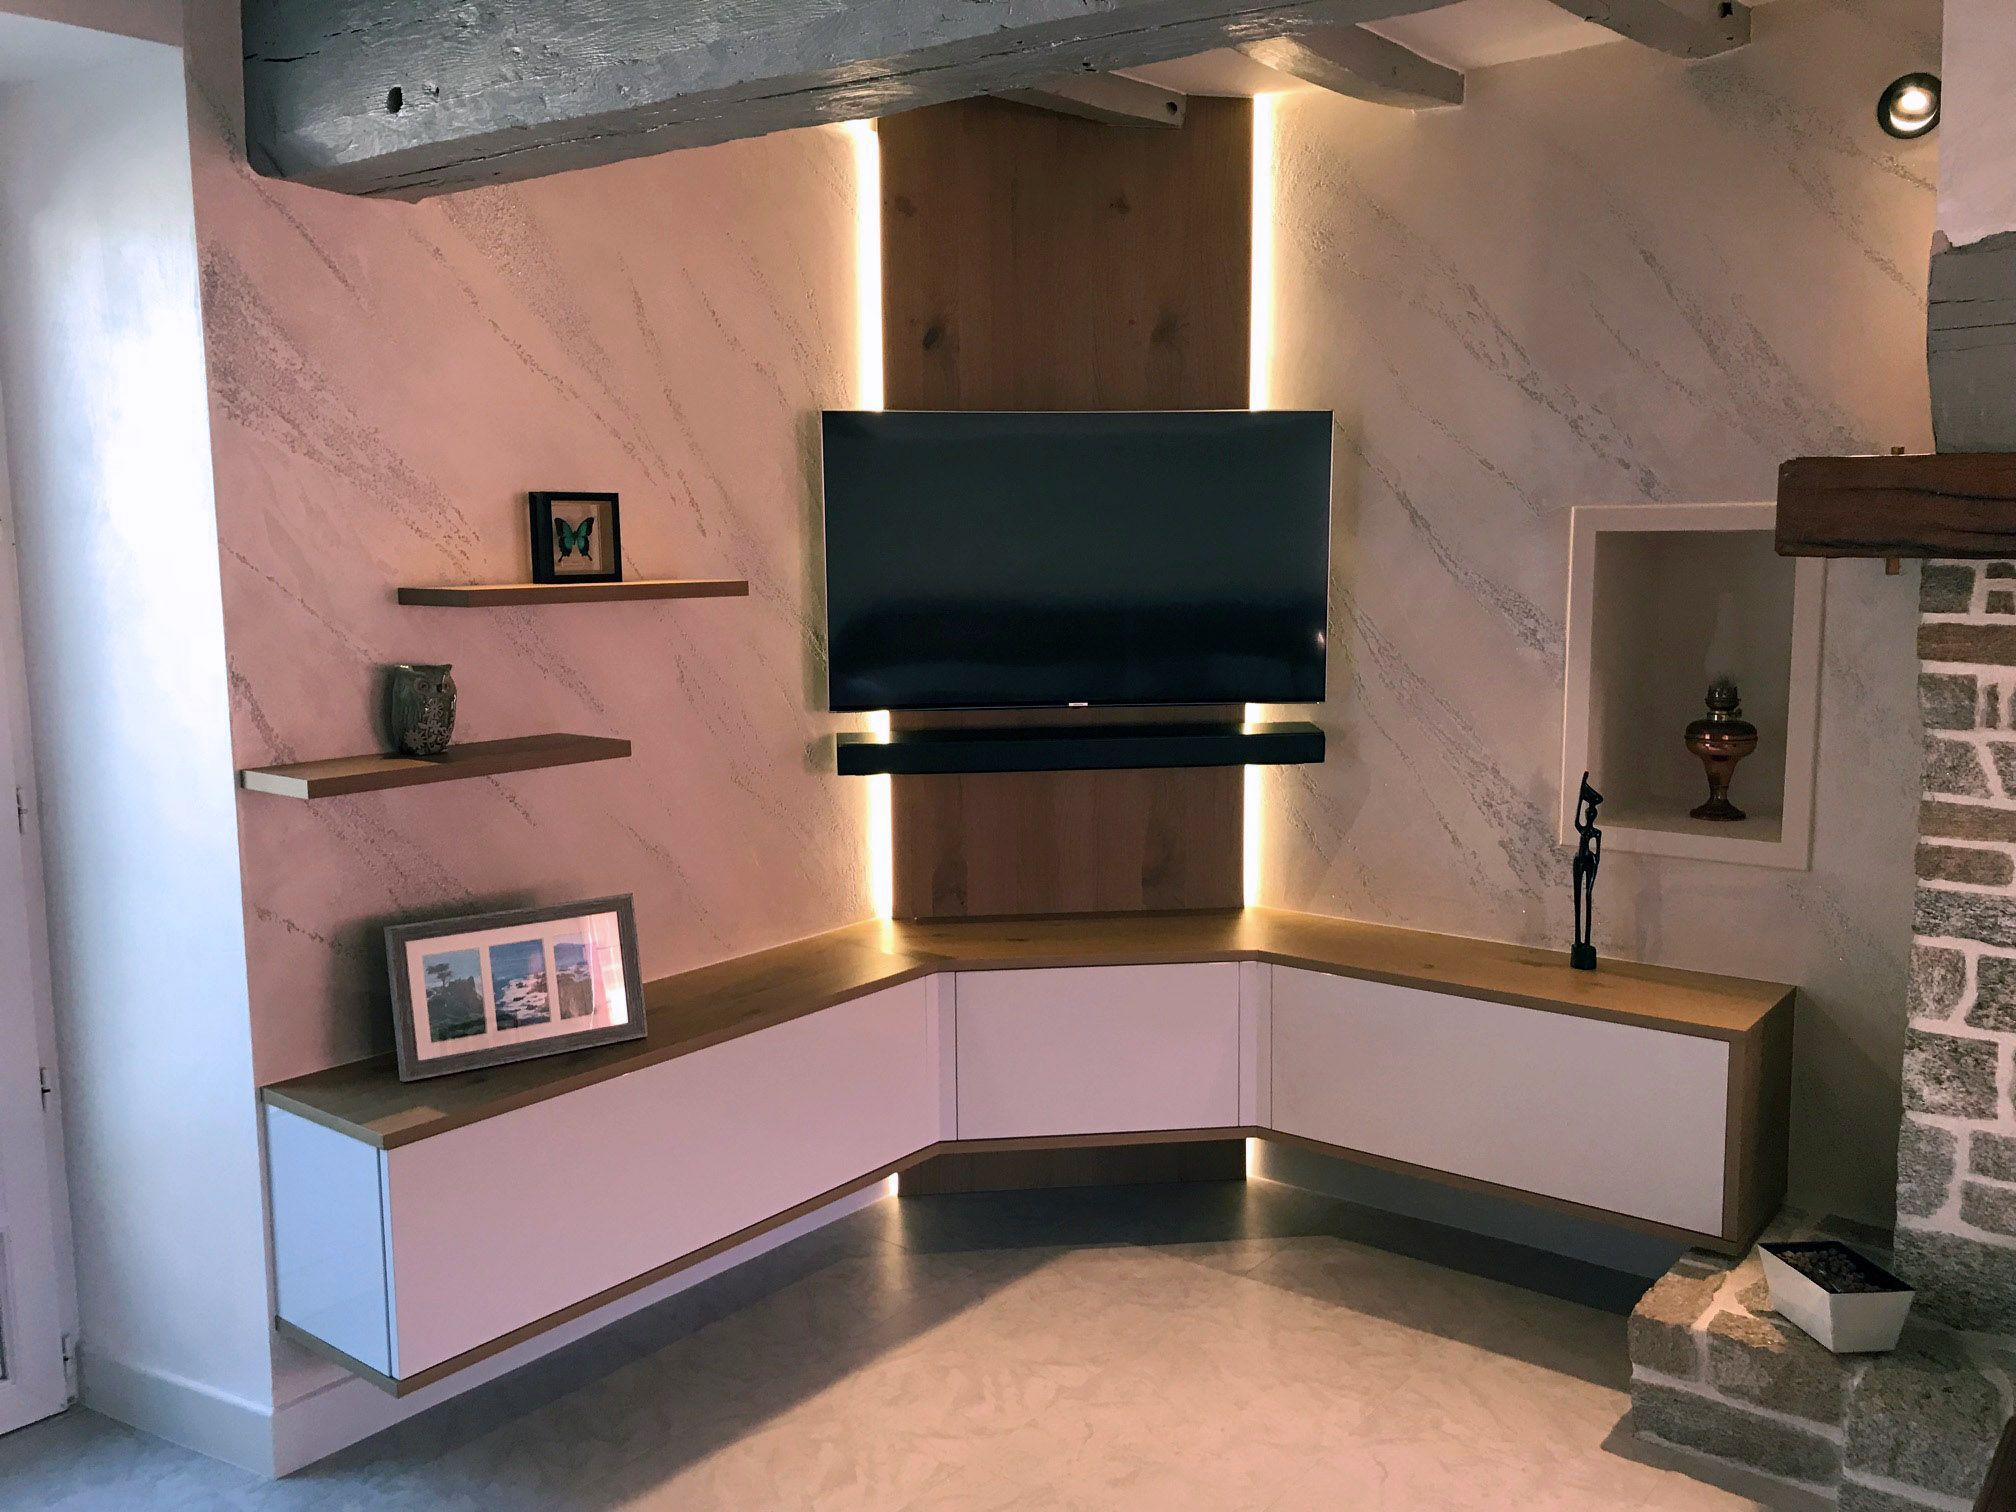 Buy Wonken Tv Unit With Laminate Finish Online In Bangalore Shop Now For Modern Contemporary Living Designs Online Rs 55 825 Cod Emi Available Modern Tv Wall Units Living Room Tv